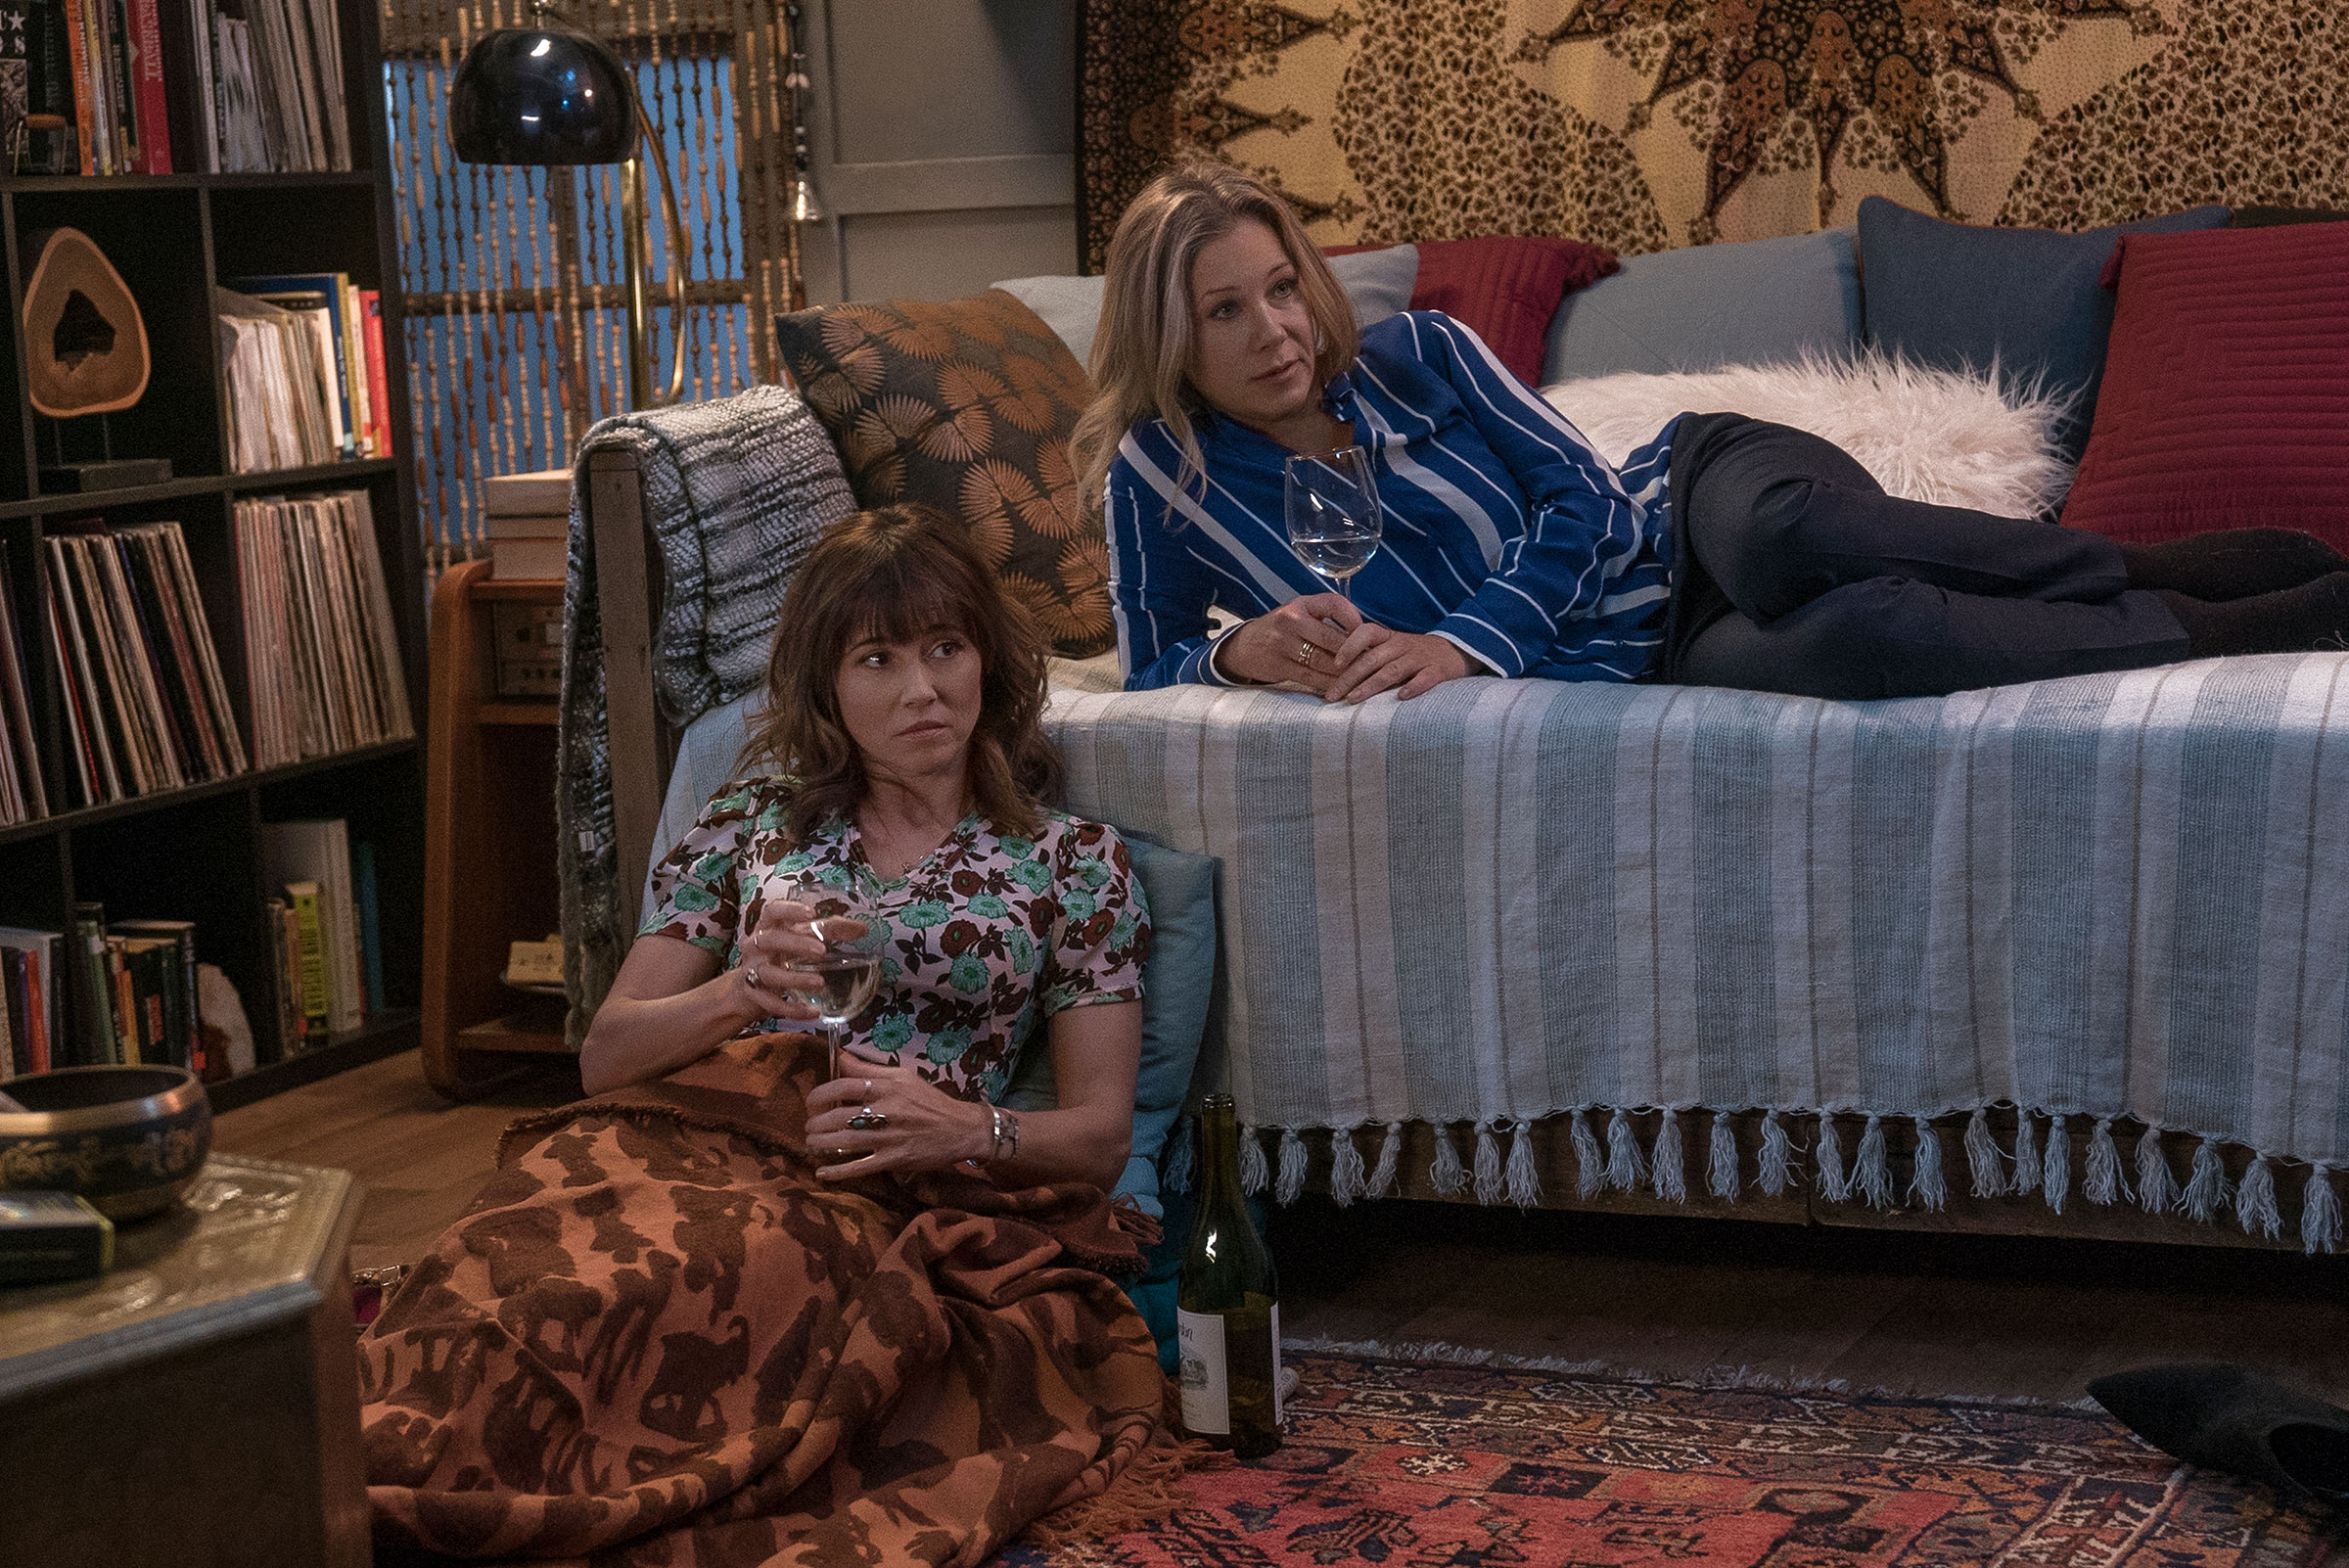 Judy (Cardellini, left) and Jen (Applegate) drown their sorrows